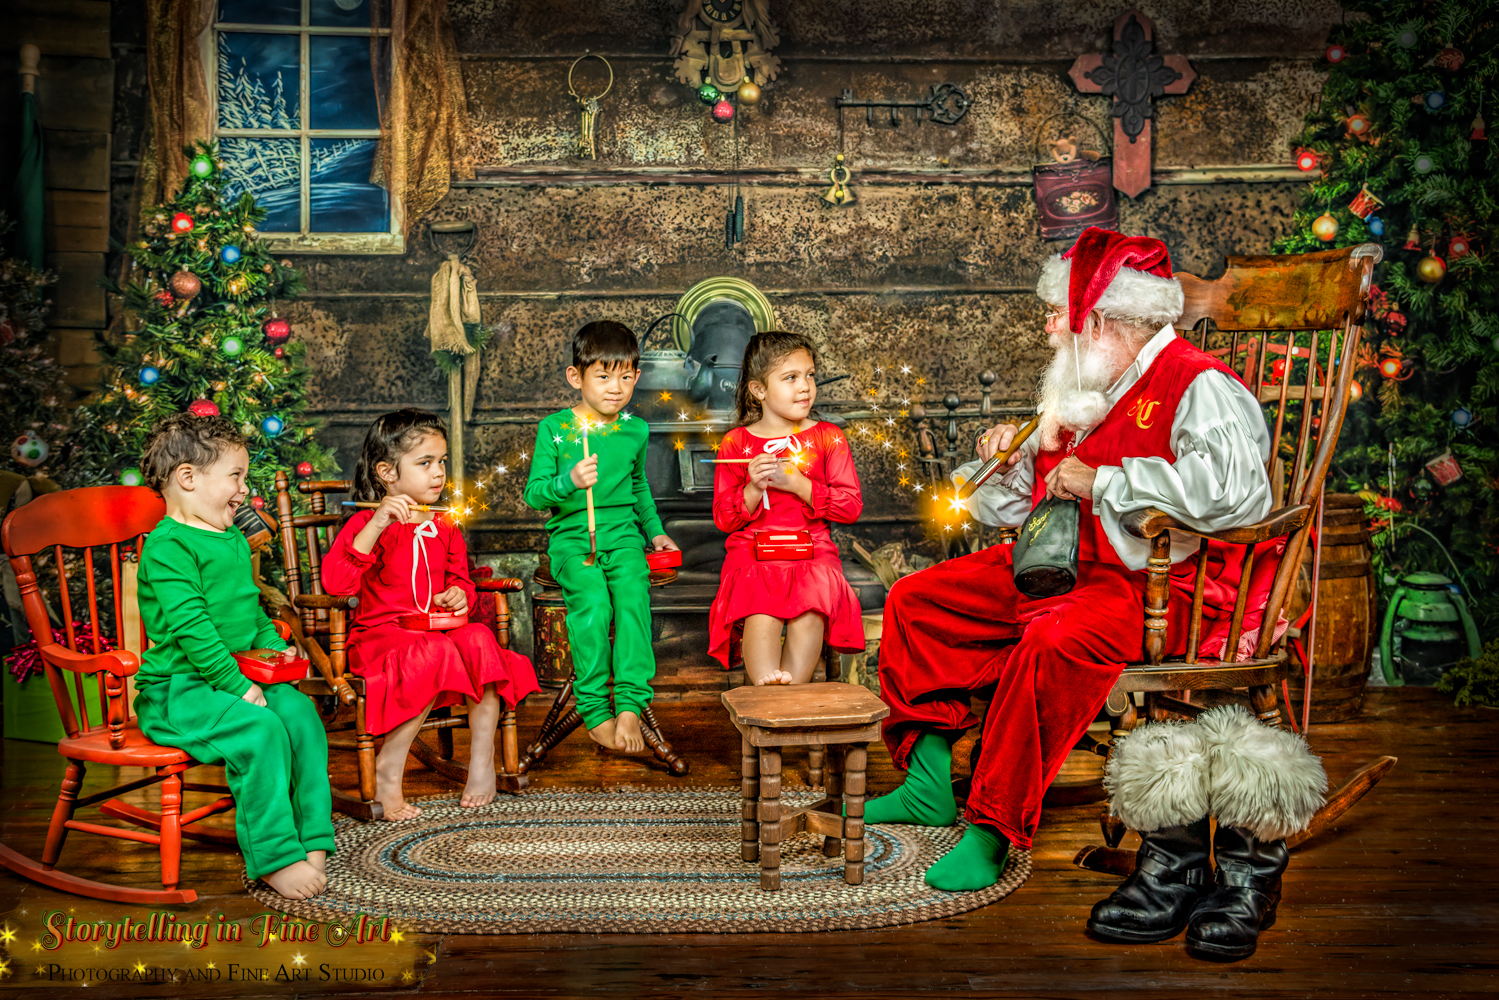 Santa teaches how to paint with magi